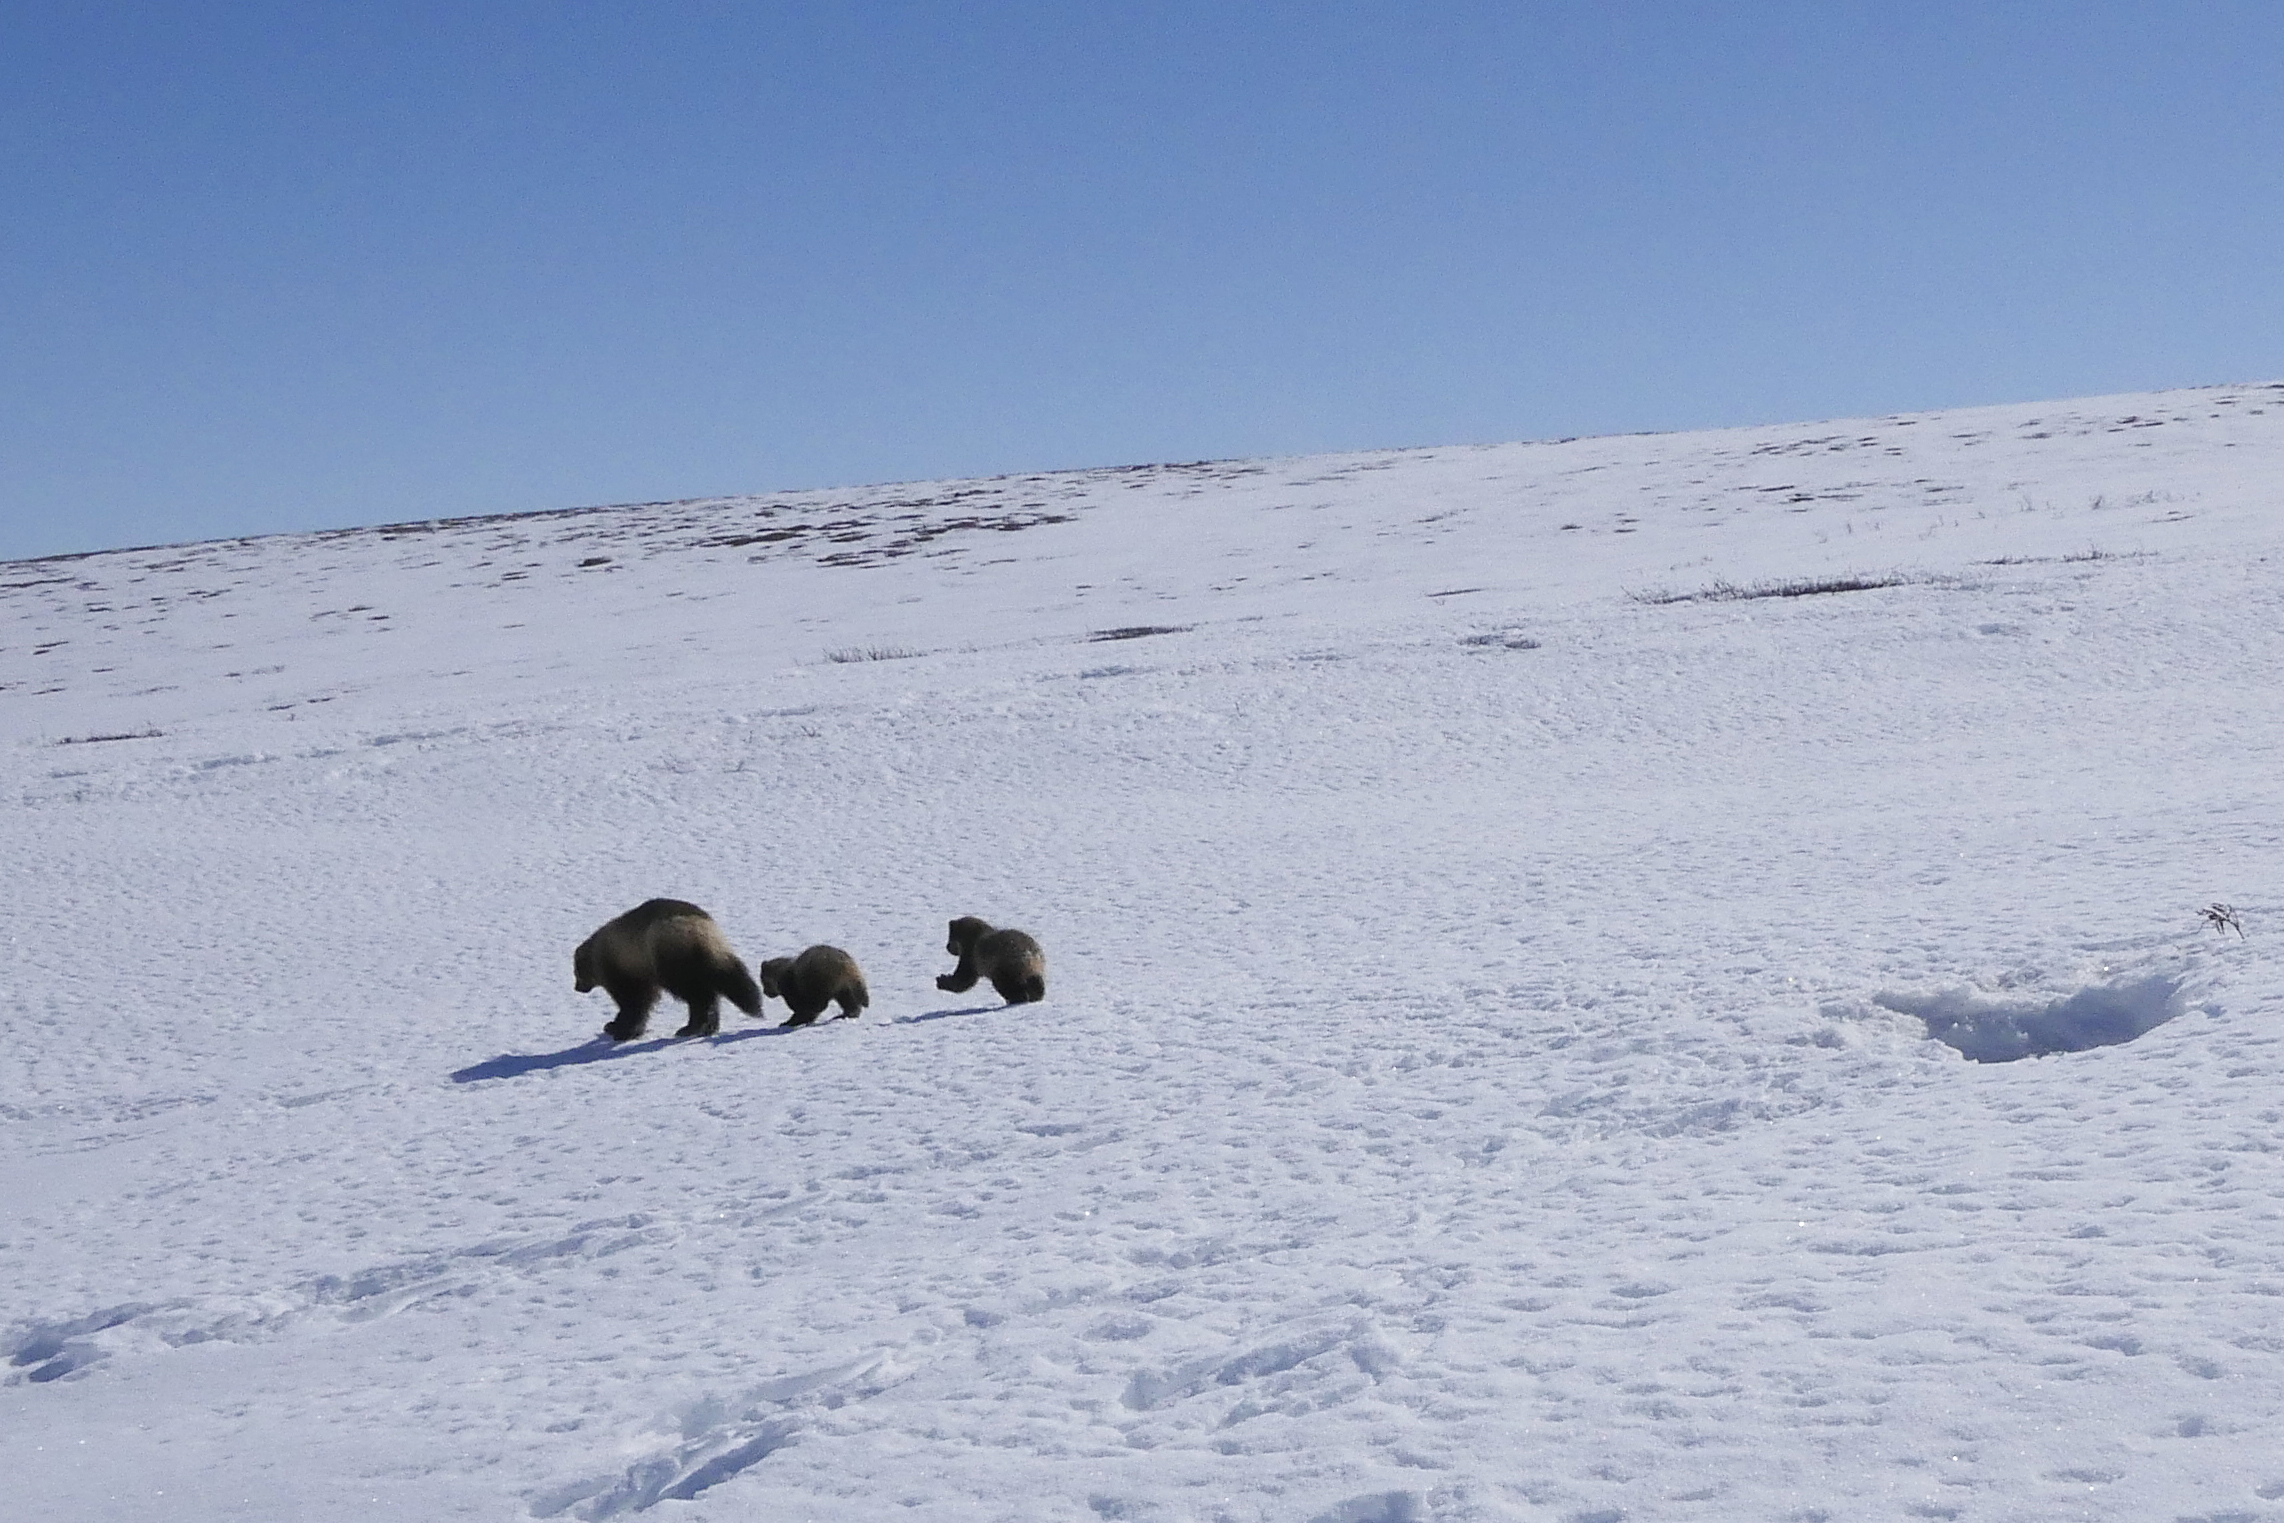 A family of wolverines walks across the snow covered ground